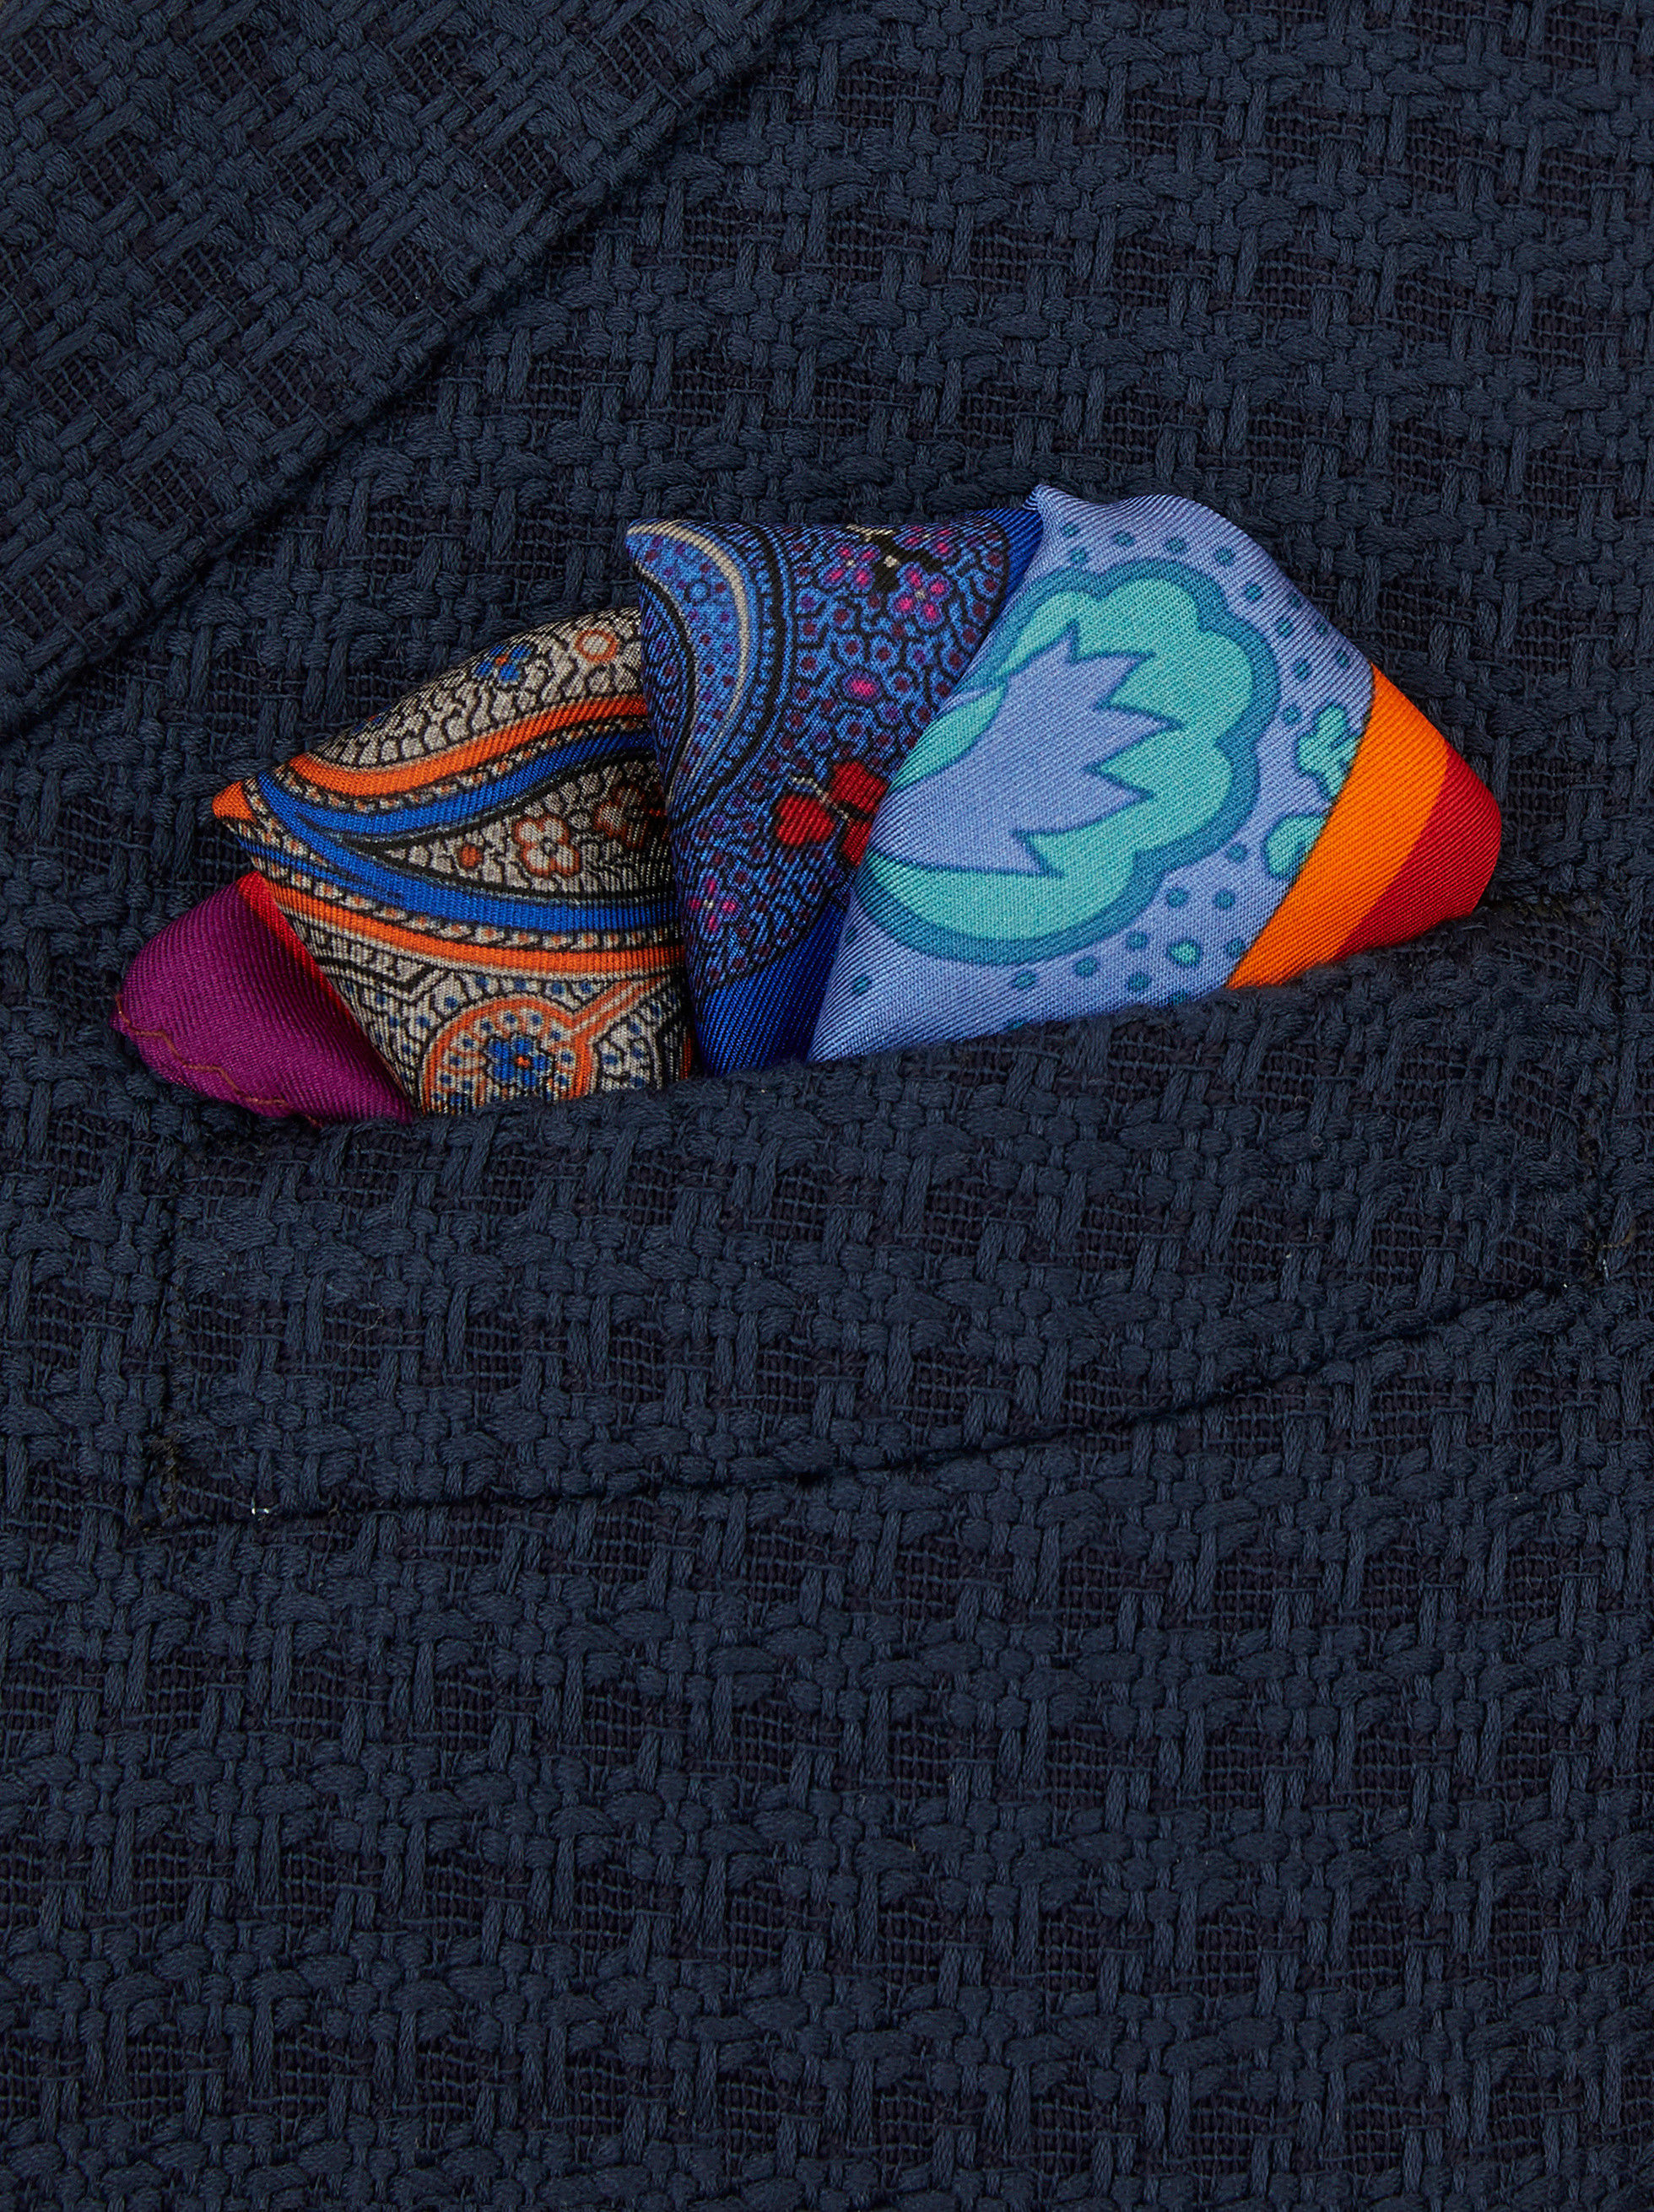 PATCHWORK PRINT POCKET SQUARE